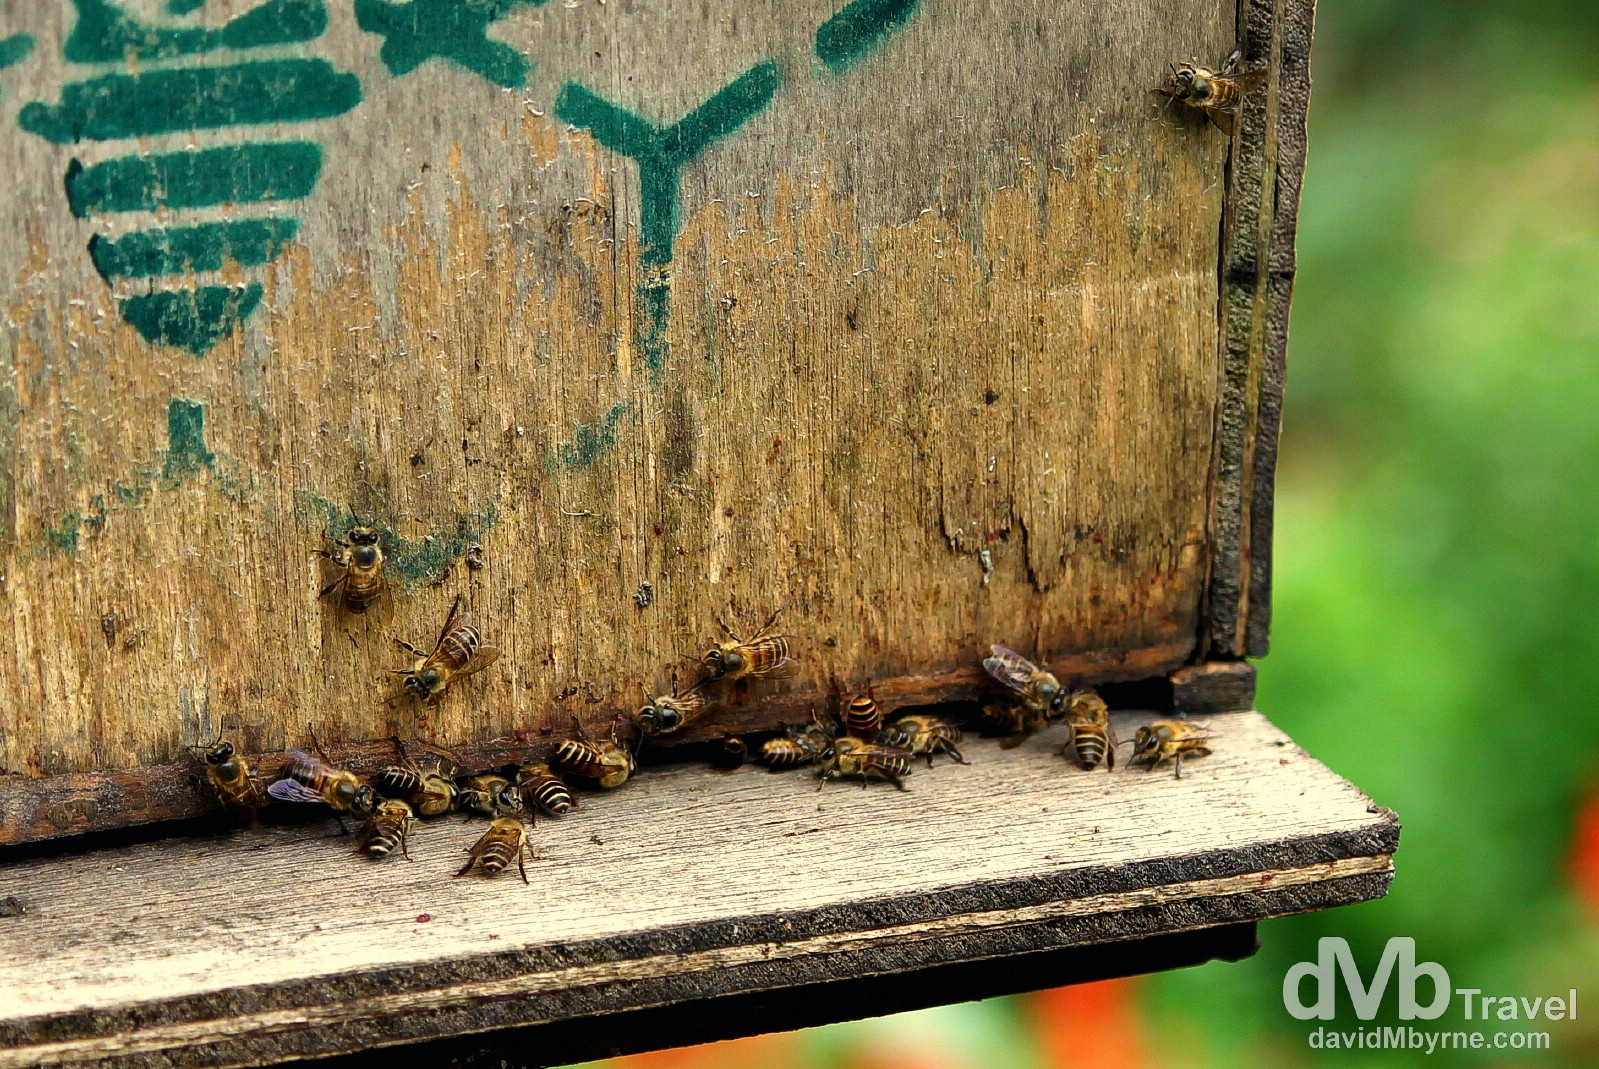 Honeybee Farm, Cameron Highlands, Malaysia. March 26th 2012.